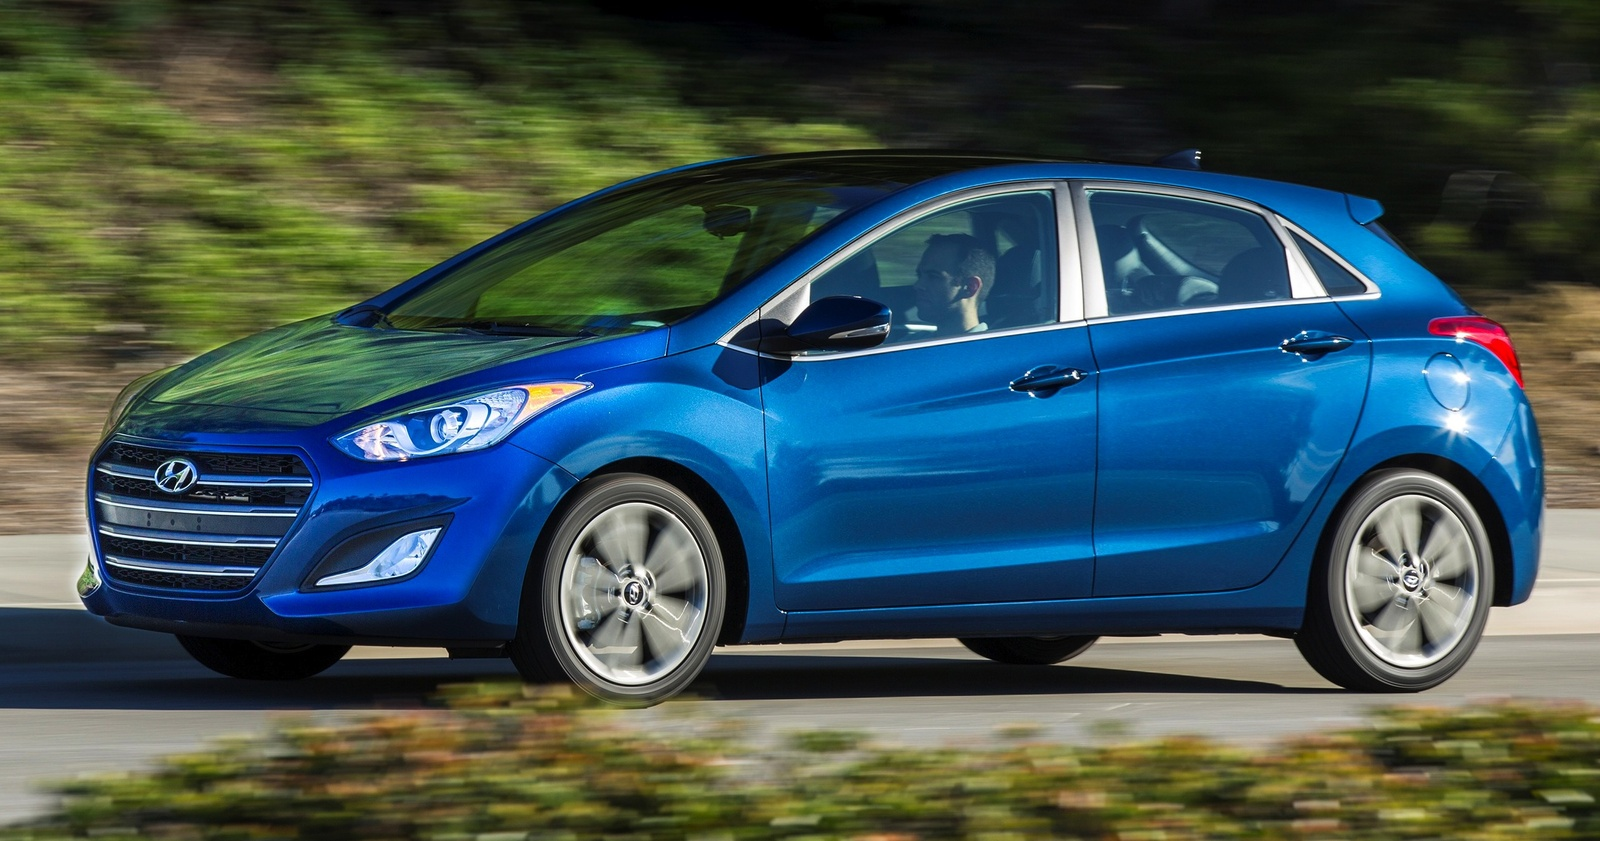 2016 hyundai elantra review cargurus. Black Bedroom Furniture Sets. Home Design Ideas